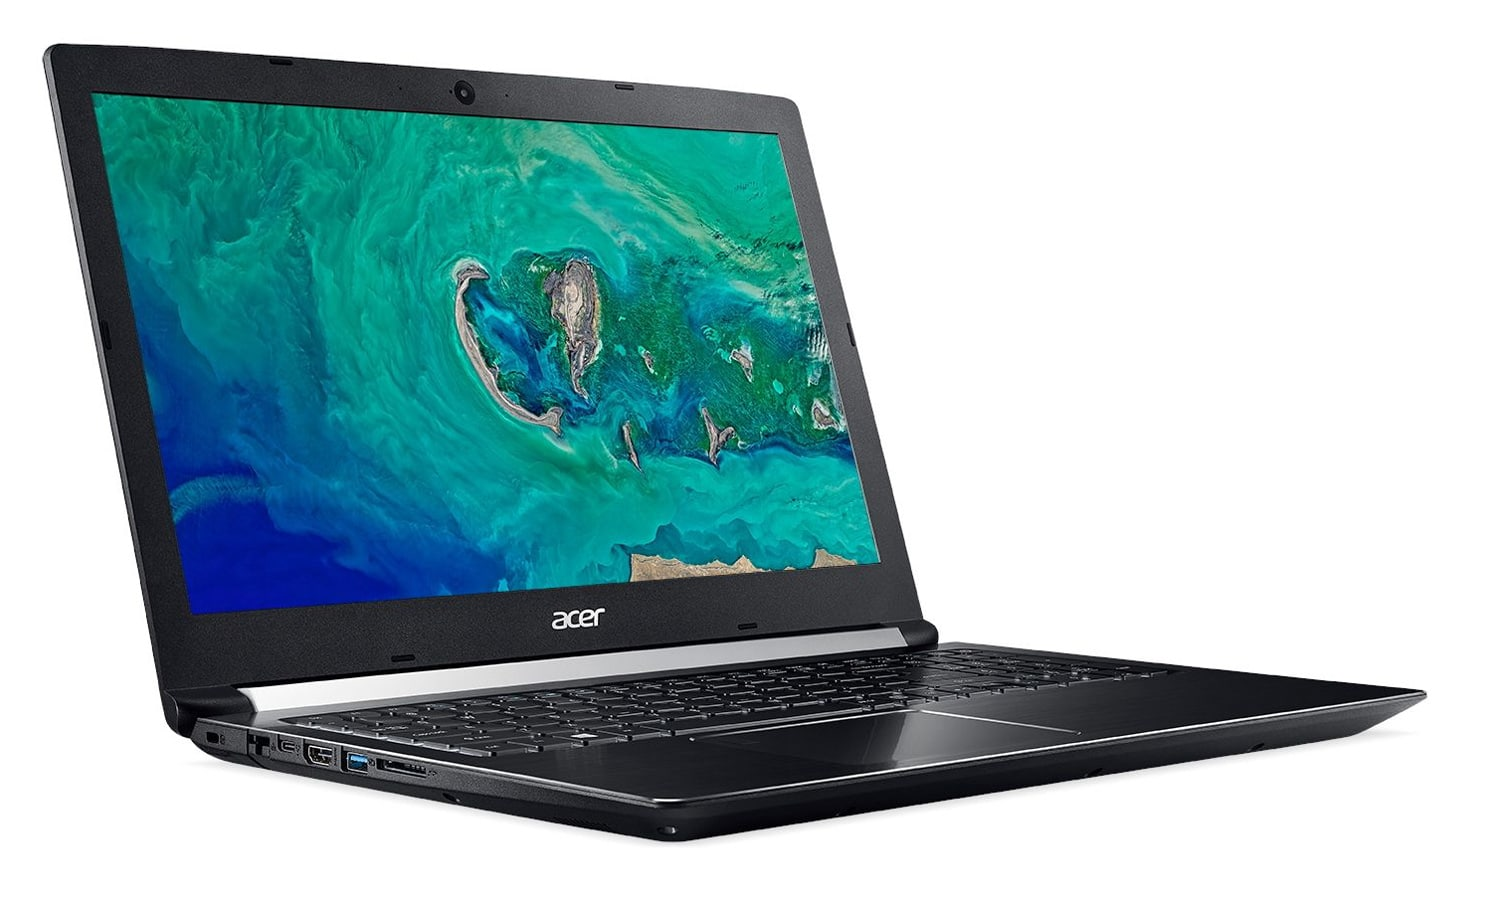 "Acer Aspire A715-72G-533A, PC portable 15"" IPS Coffee Lake GTX 1050 SSD à 899€"